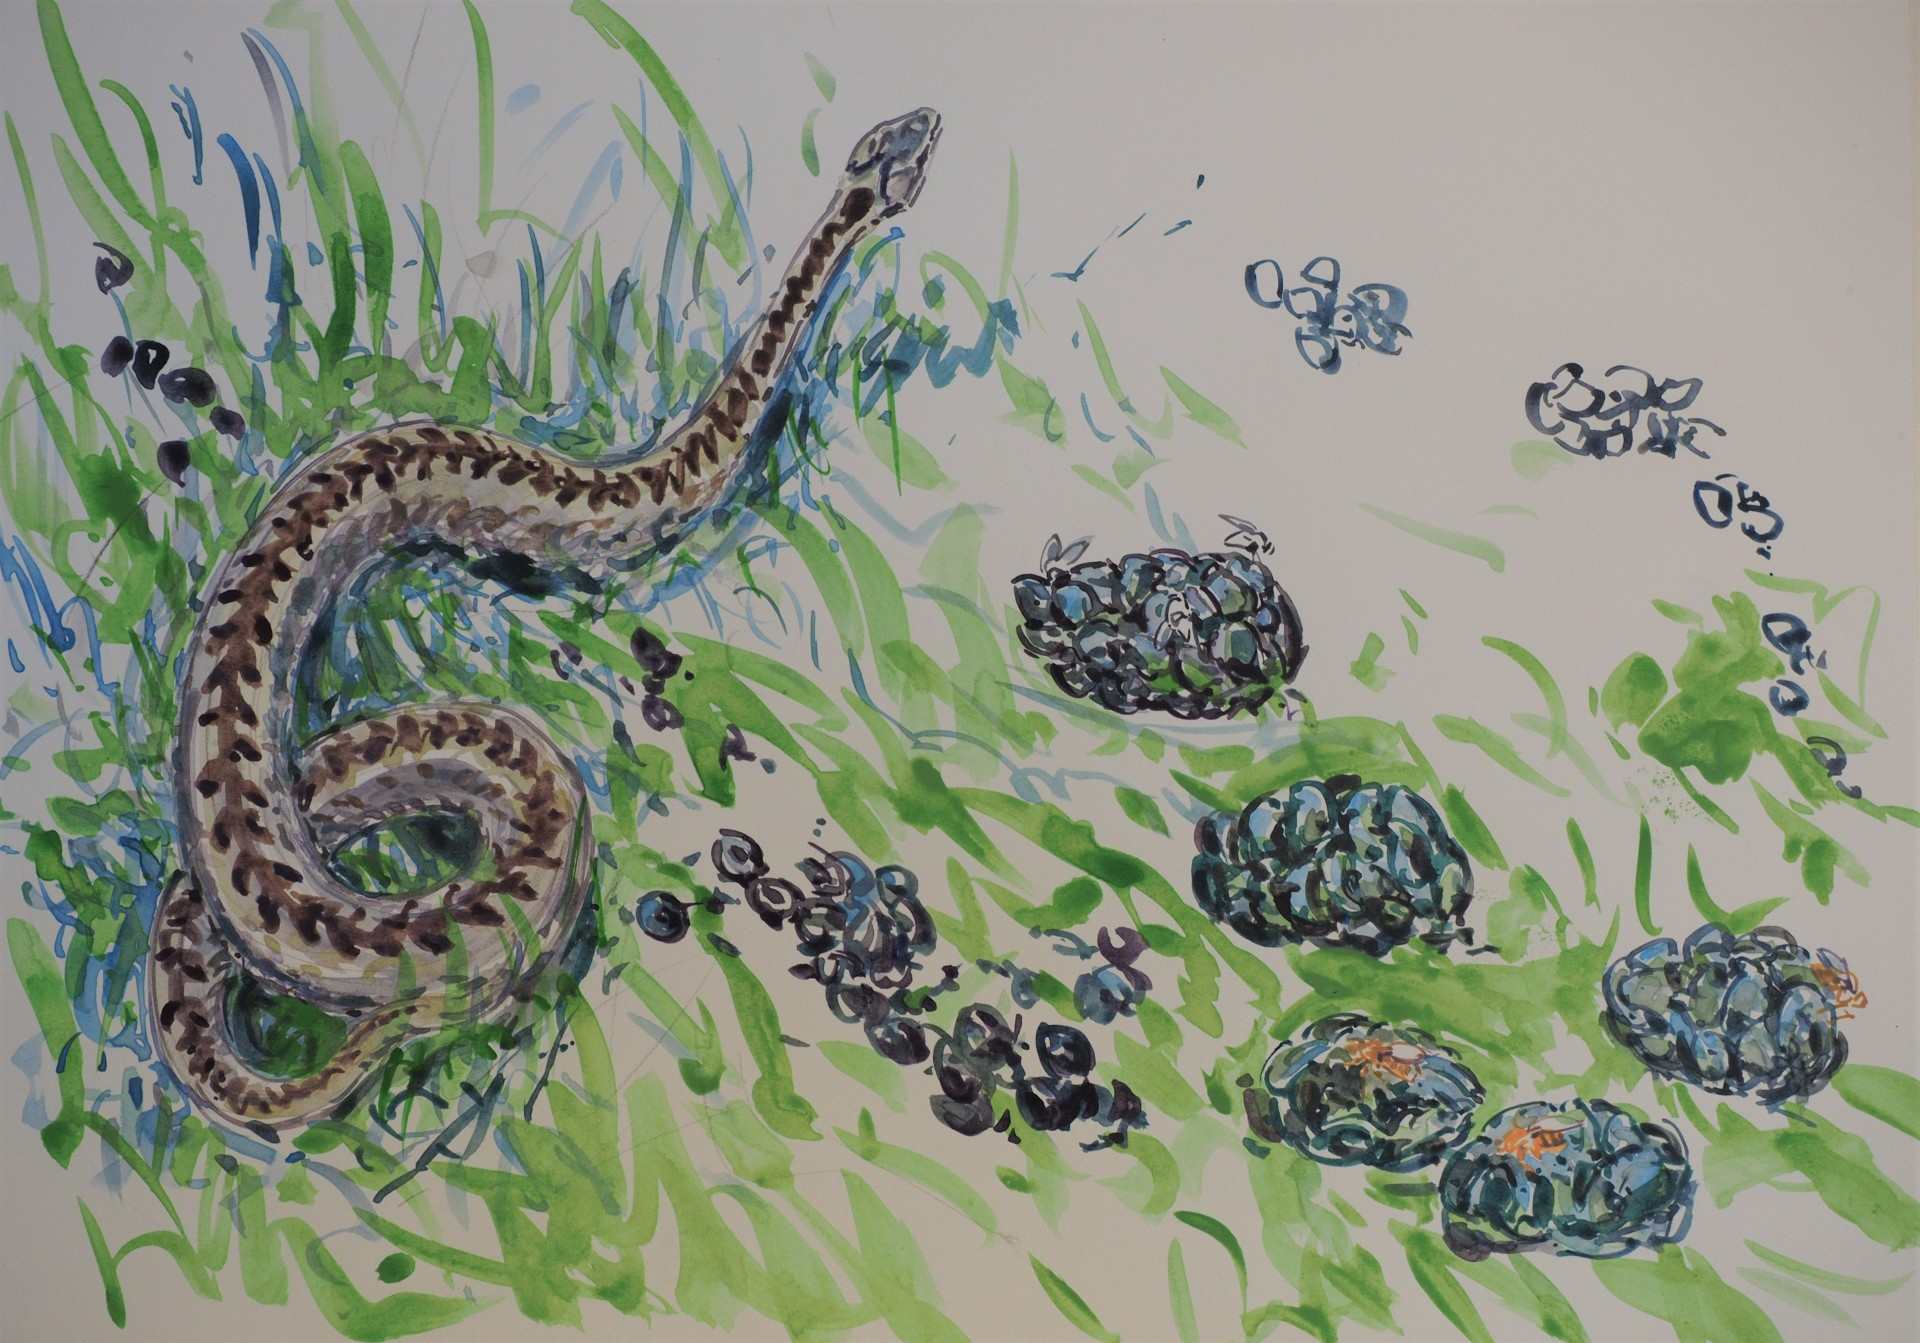 Adder and Flies on Sheep droppings